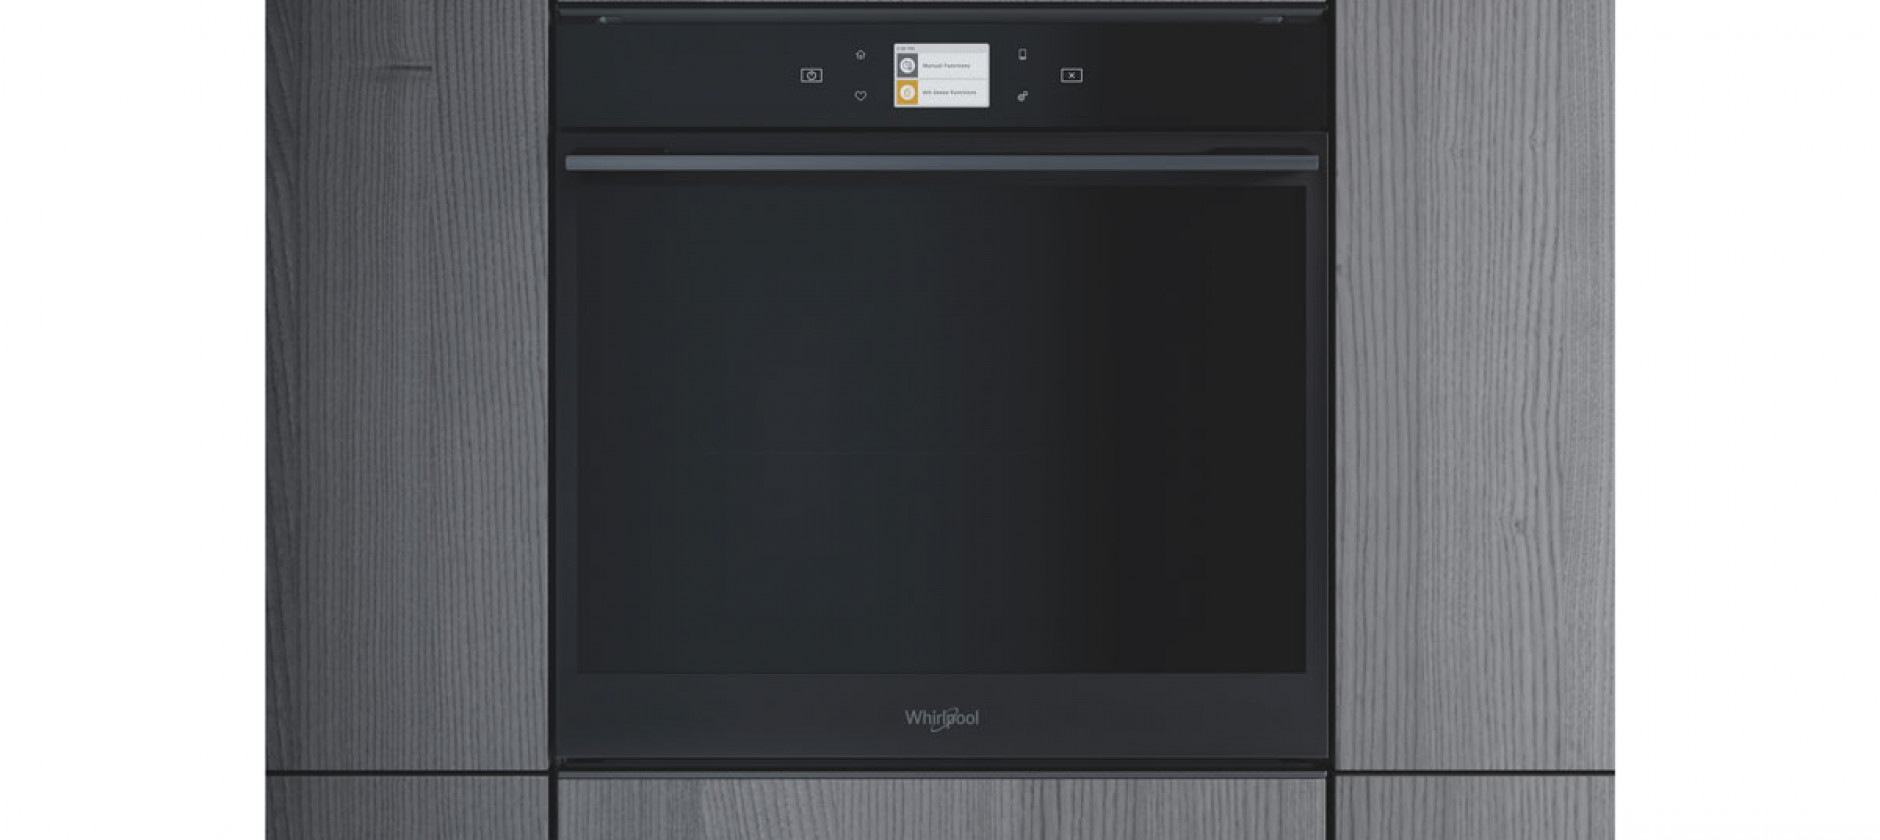 Design e tecnologia per il forno Black Fiber della W Collection di Whirlpool